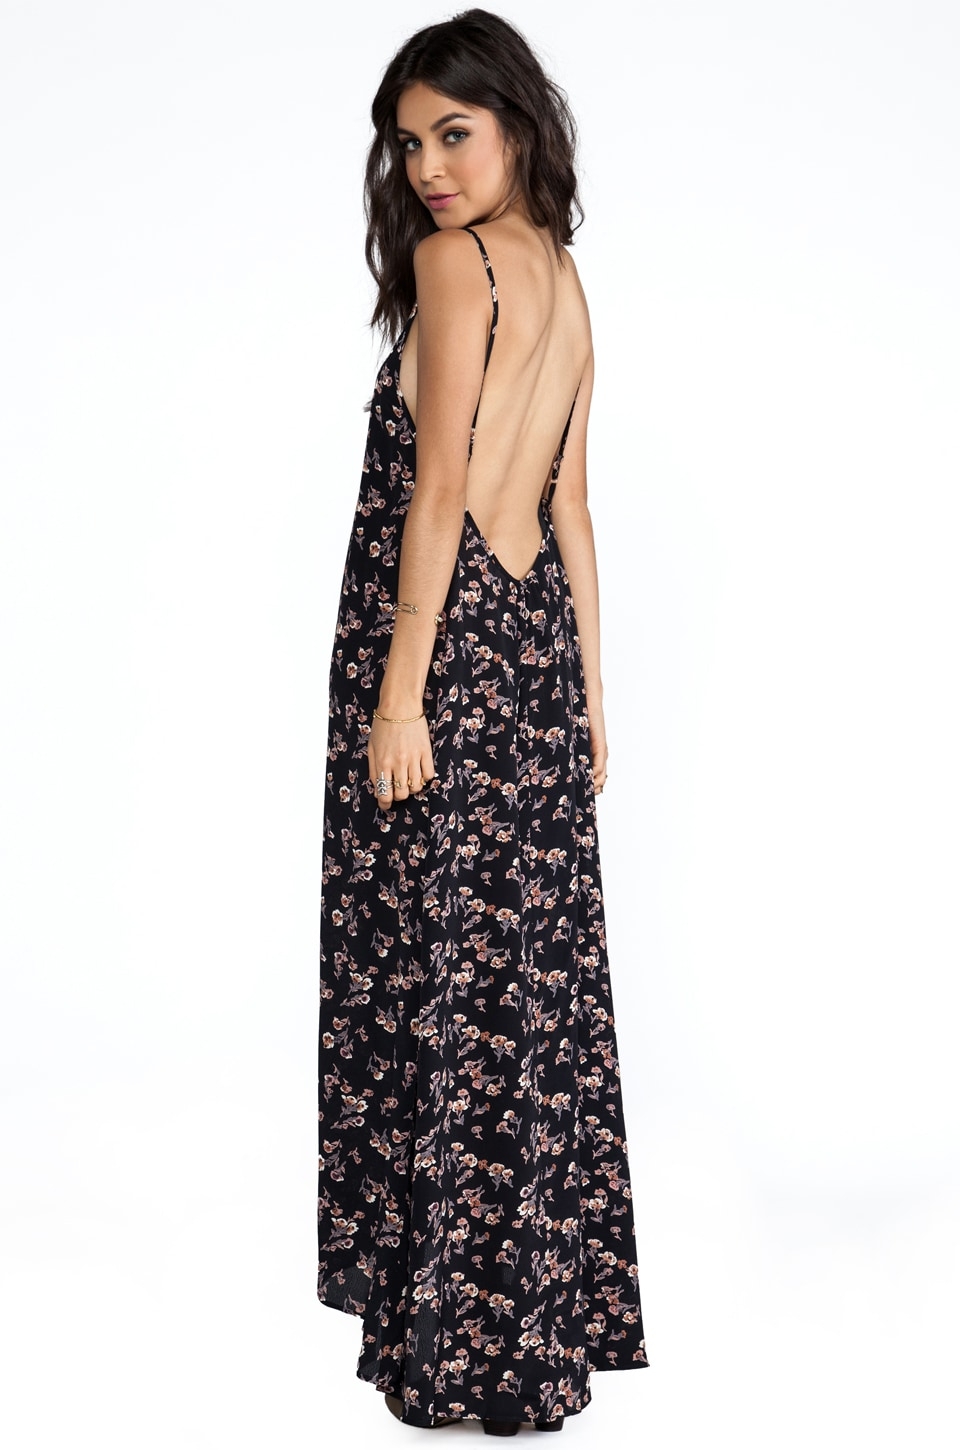 FLYNN SKYE REVOLVE Exclusive Scoop Back Maxi Dress in Farm Flower